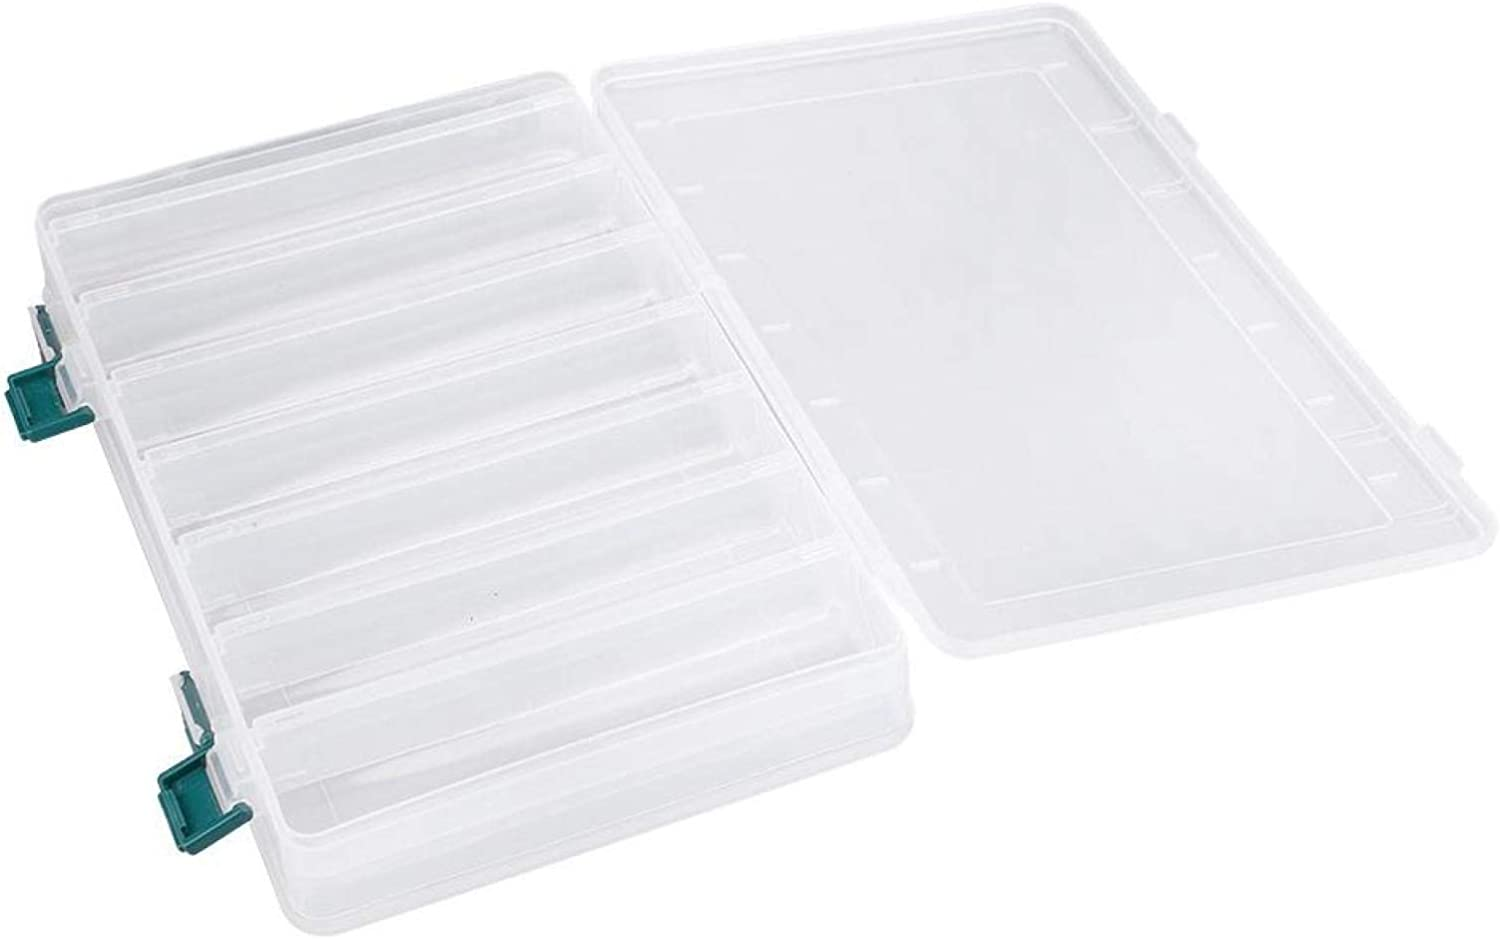 CUTULAMO Double Super sale Side Plastic Fishing Baits Box Clear C Soldering Frosting